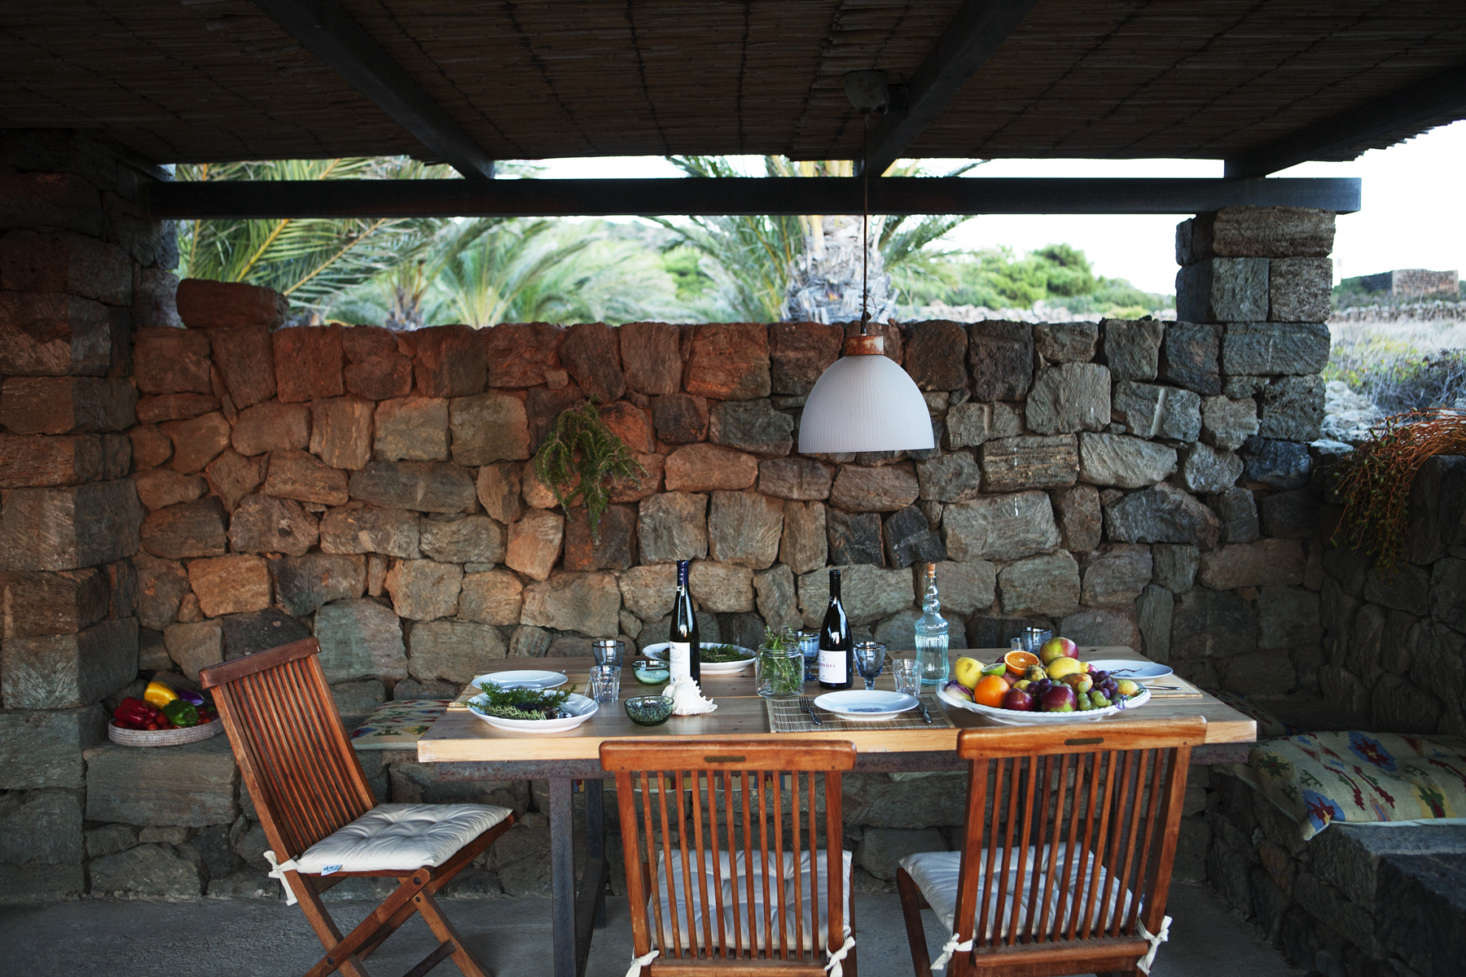 Dammuso Vigna is small, but it has a sizeable outdoor space.